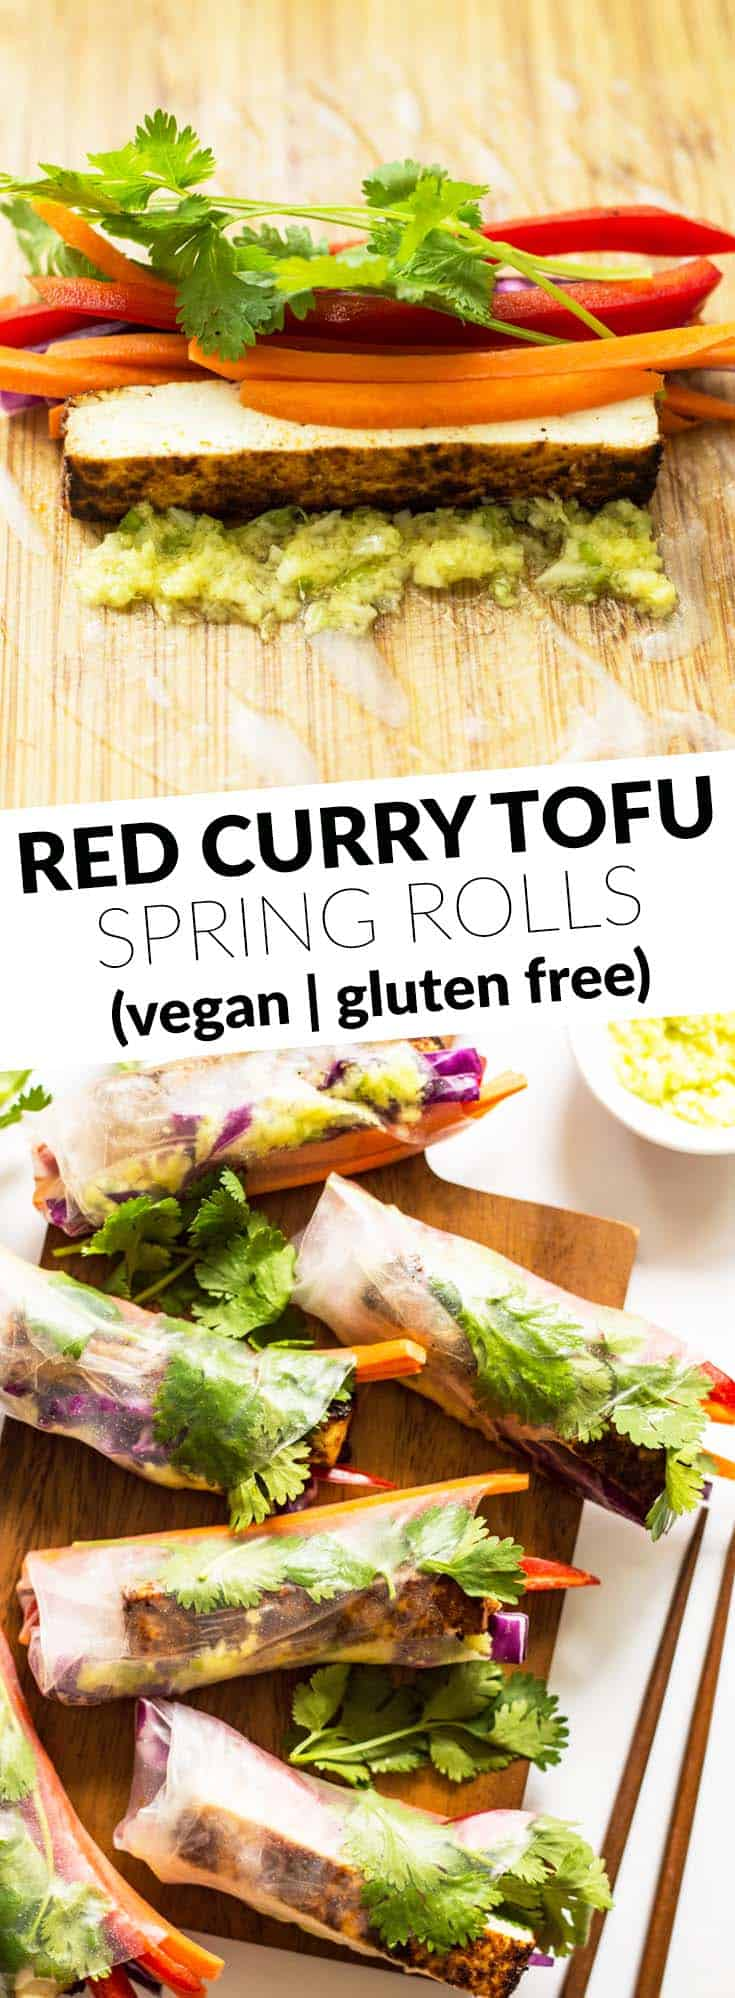 Red Curry Brown Sugar Tofu Spring Rolls - the perfect healthy vegan and gluten-free appetizer by @healthynibs